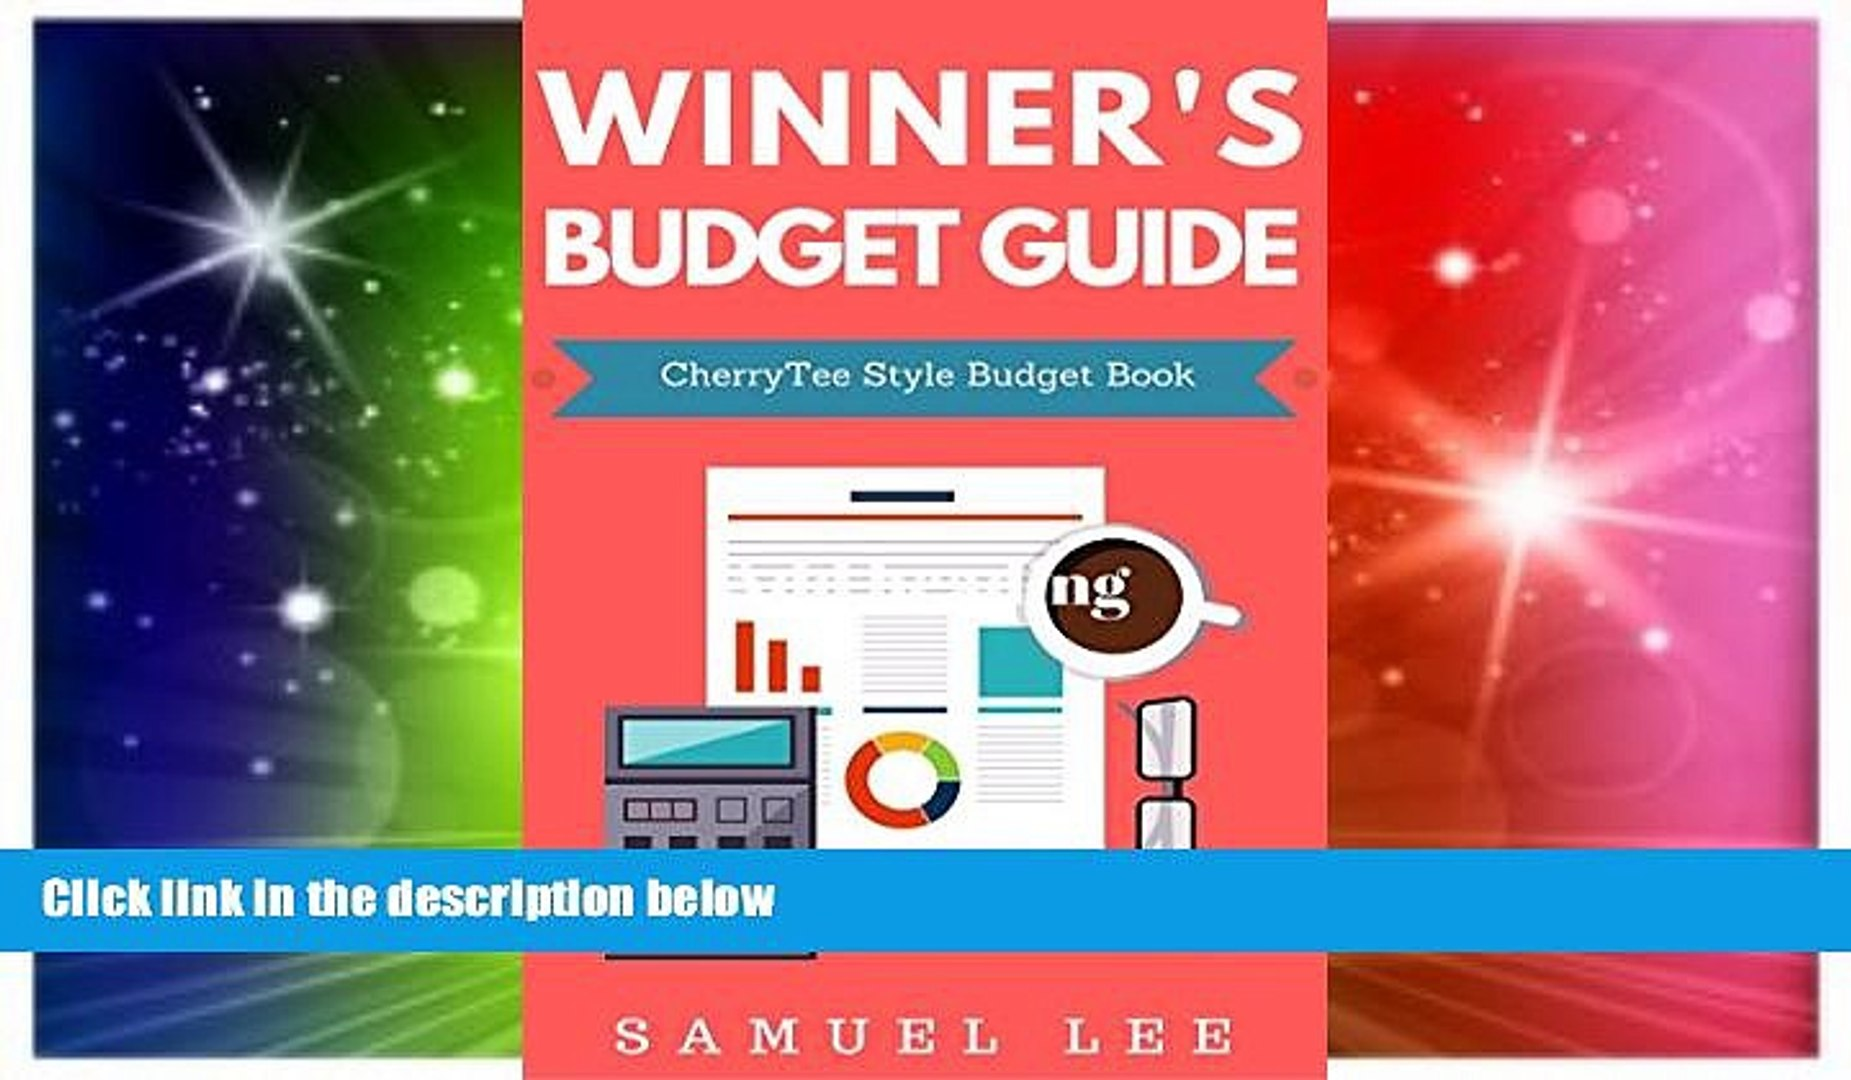 Ebook Best Deals  How To Budget: Winner s Budget Guide CherryTree Style(how to budget